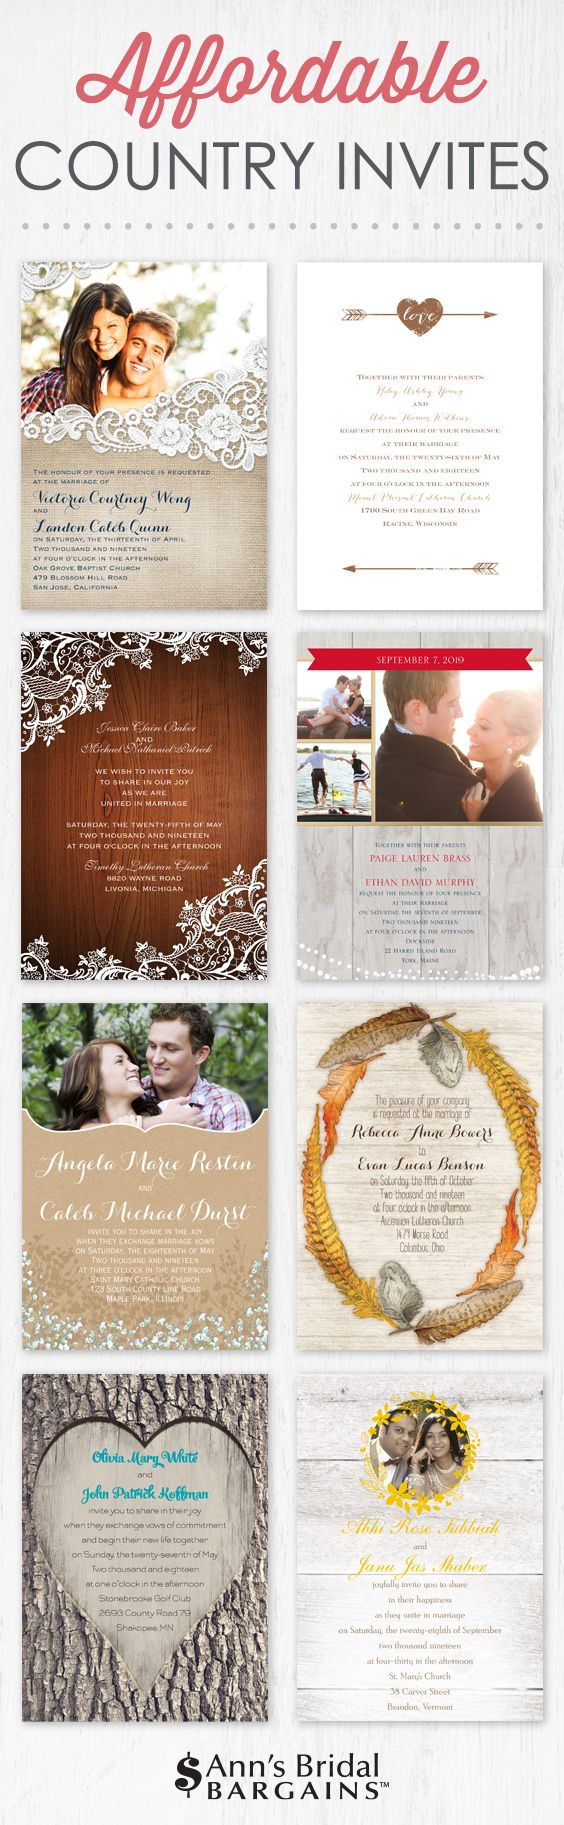 realtree wedding invitations%0A Country wedding invitations that won u    t cost you an arm and a